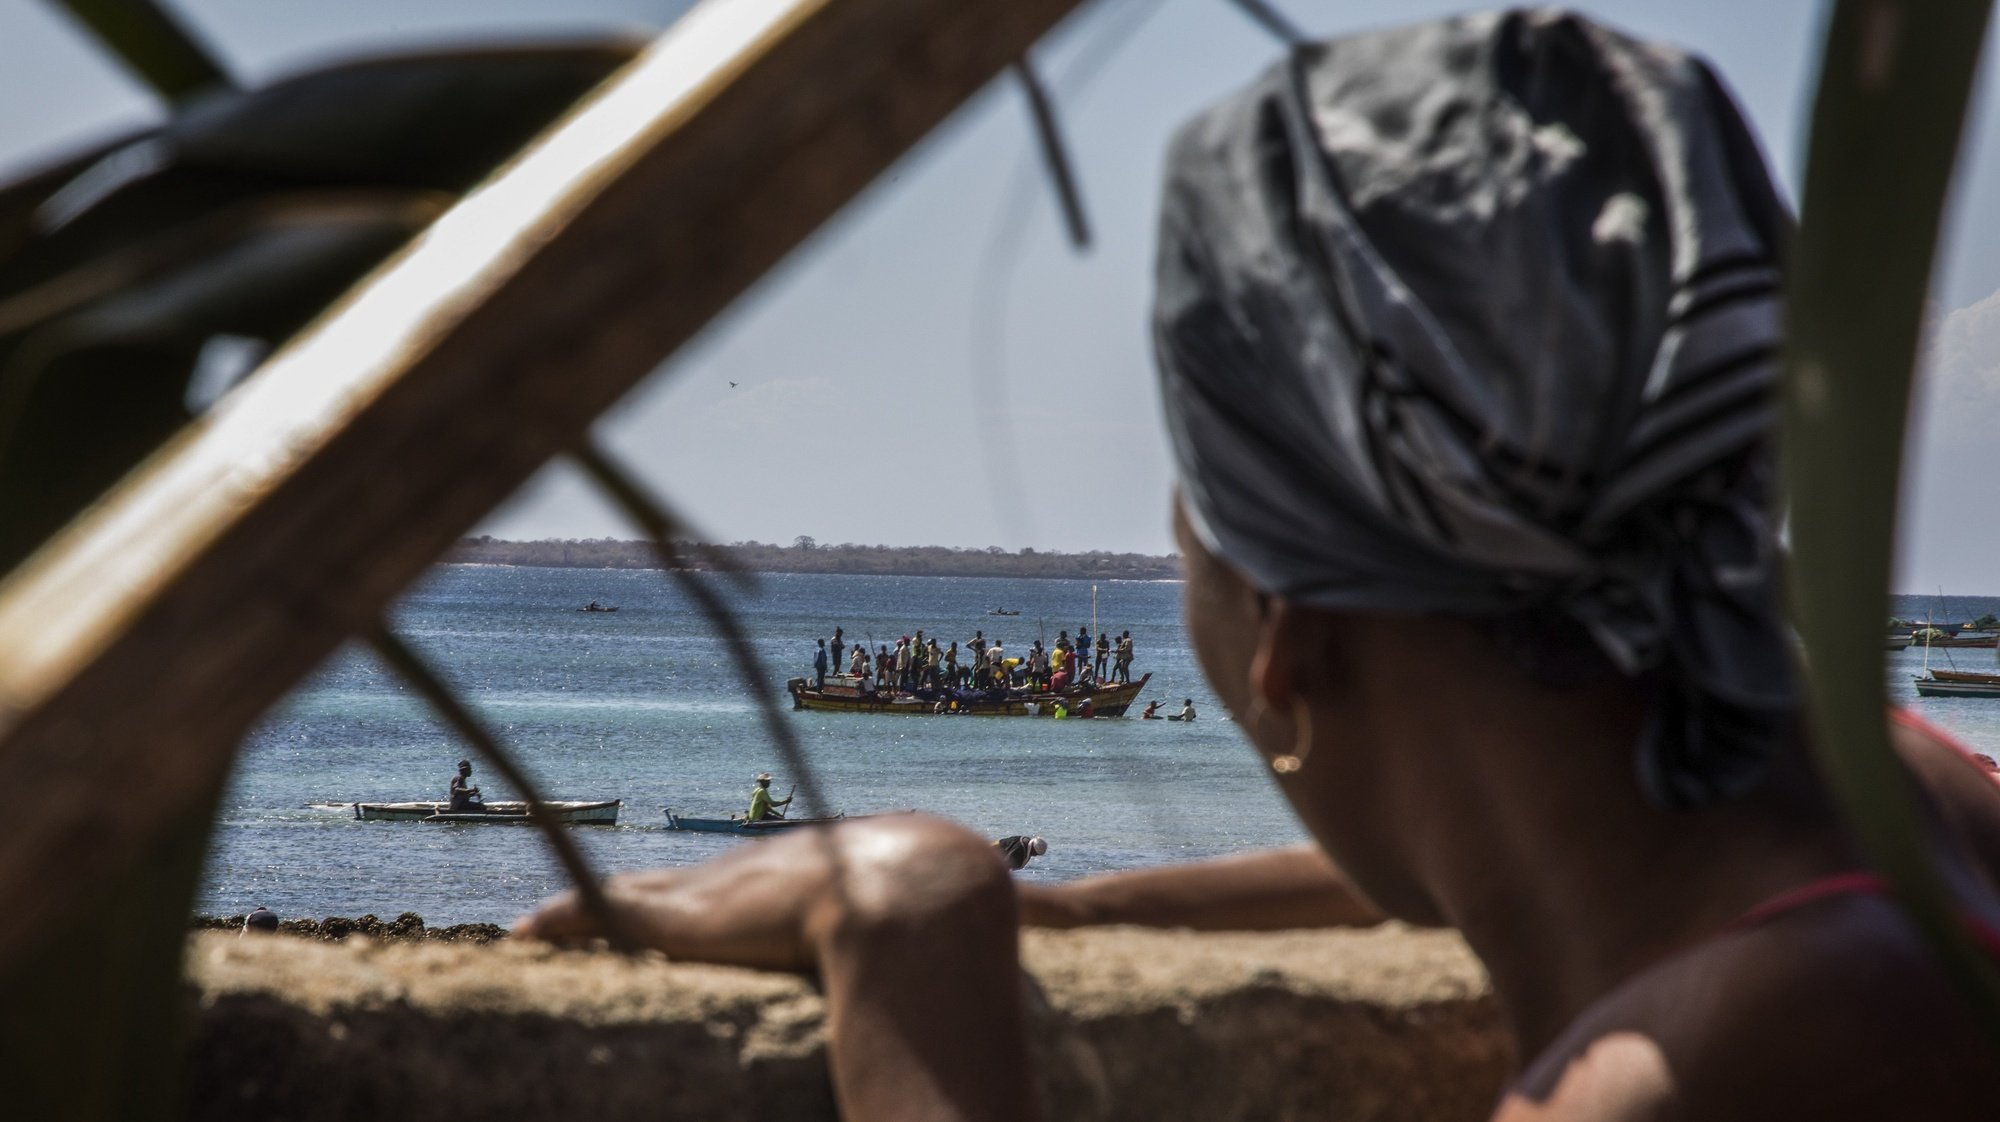 epaselect epa08559025 Passengers and cargo board a boat from a fishermen's beach that has become one of the main arrival points for displaced persons fleeing from armed violence raging in the province of Cabo Delgado, in the Paquitequete district of Pemba, northern Mozambique, 21 July 2020. Radical Islamist militant groups seeking to establish an Islamic state in the region, such as Ansar al-Sunna, have claimed responsibility for some of these attacks over the past year. The insurgent groups had taken control of strategic villages dotting the coast of the northern Cabo Delgado province – which are located more than 100 kilometers (62 miles) from the provincial capital, Pemba – for several days before they were driven out by troops belonging to the  Mozambique Defense Armed Forces (FADM).  EPA/RICARDO FRANCO